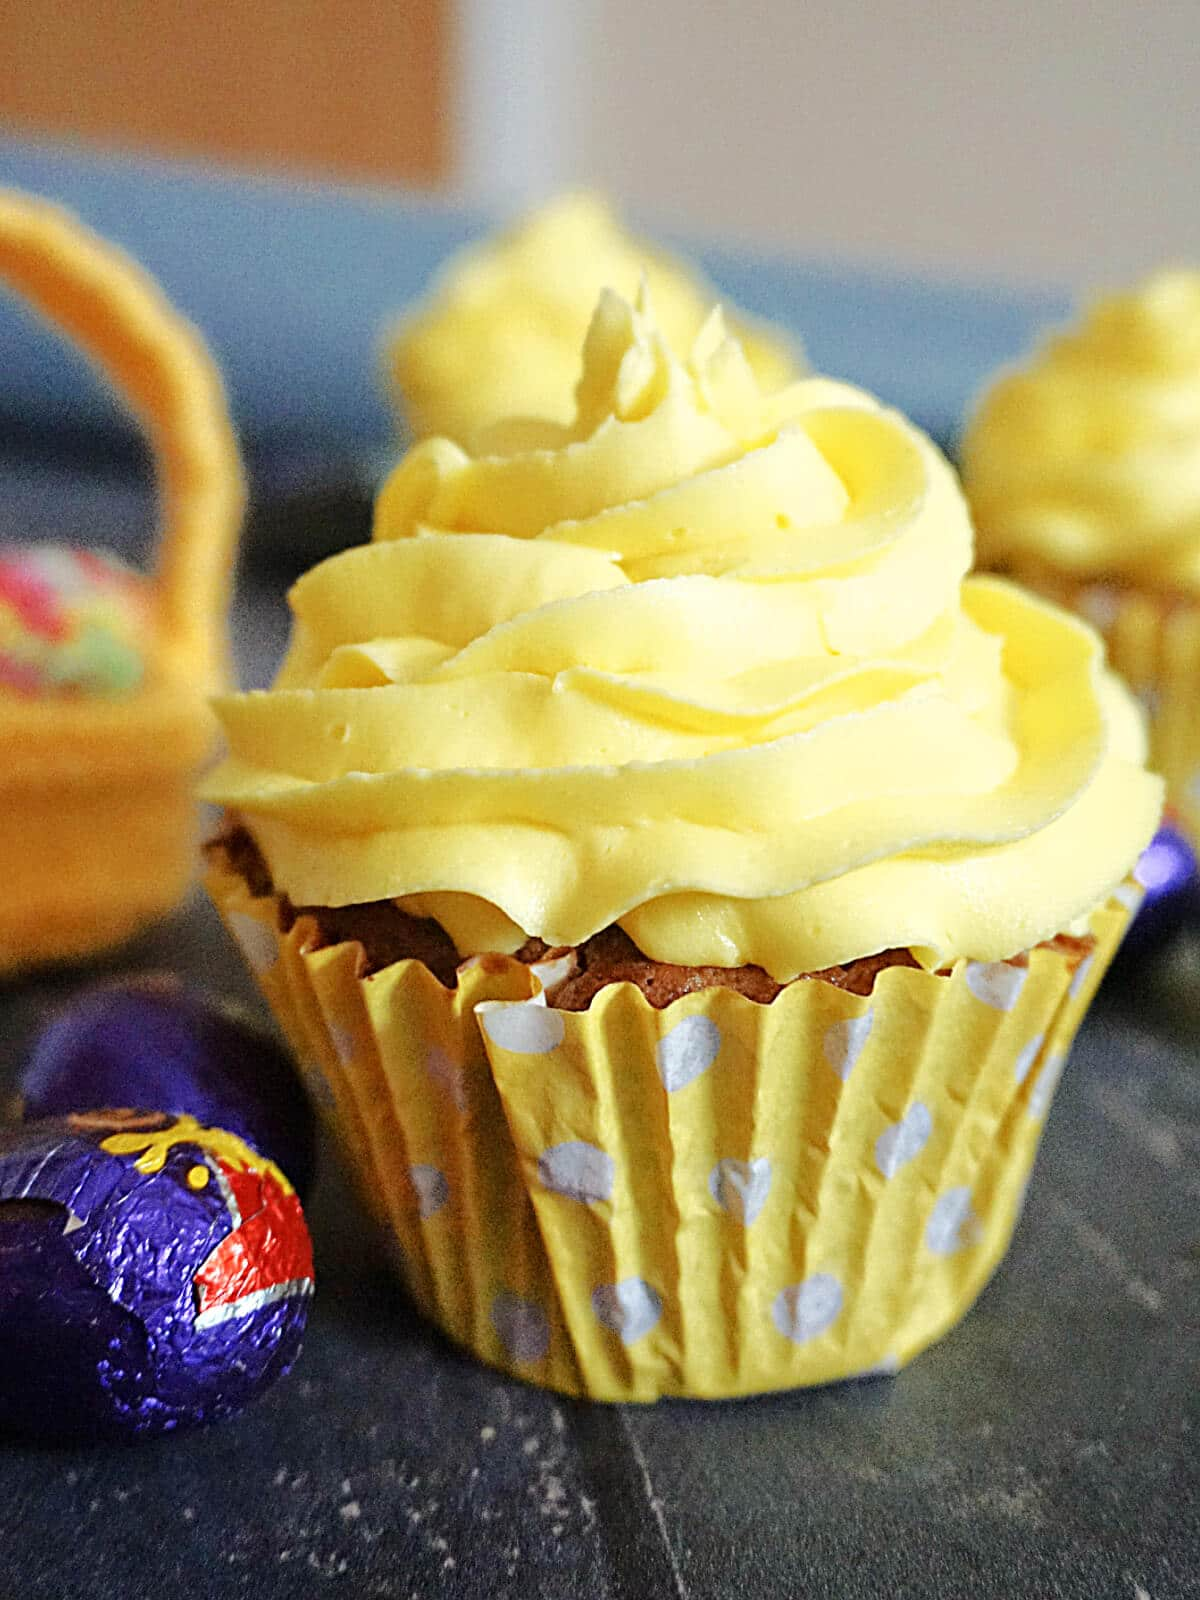 A creme egg cupcake topped with lemon buttercream and creme eggs around it